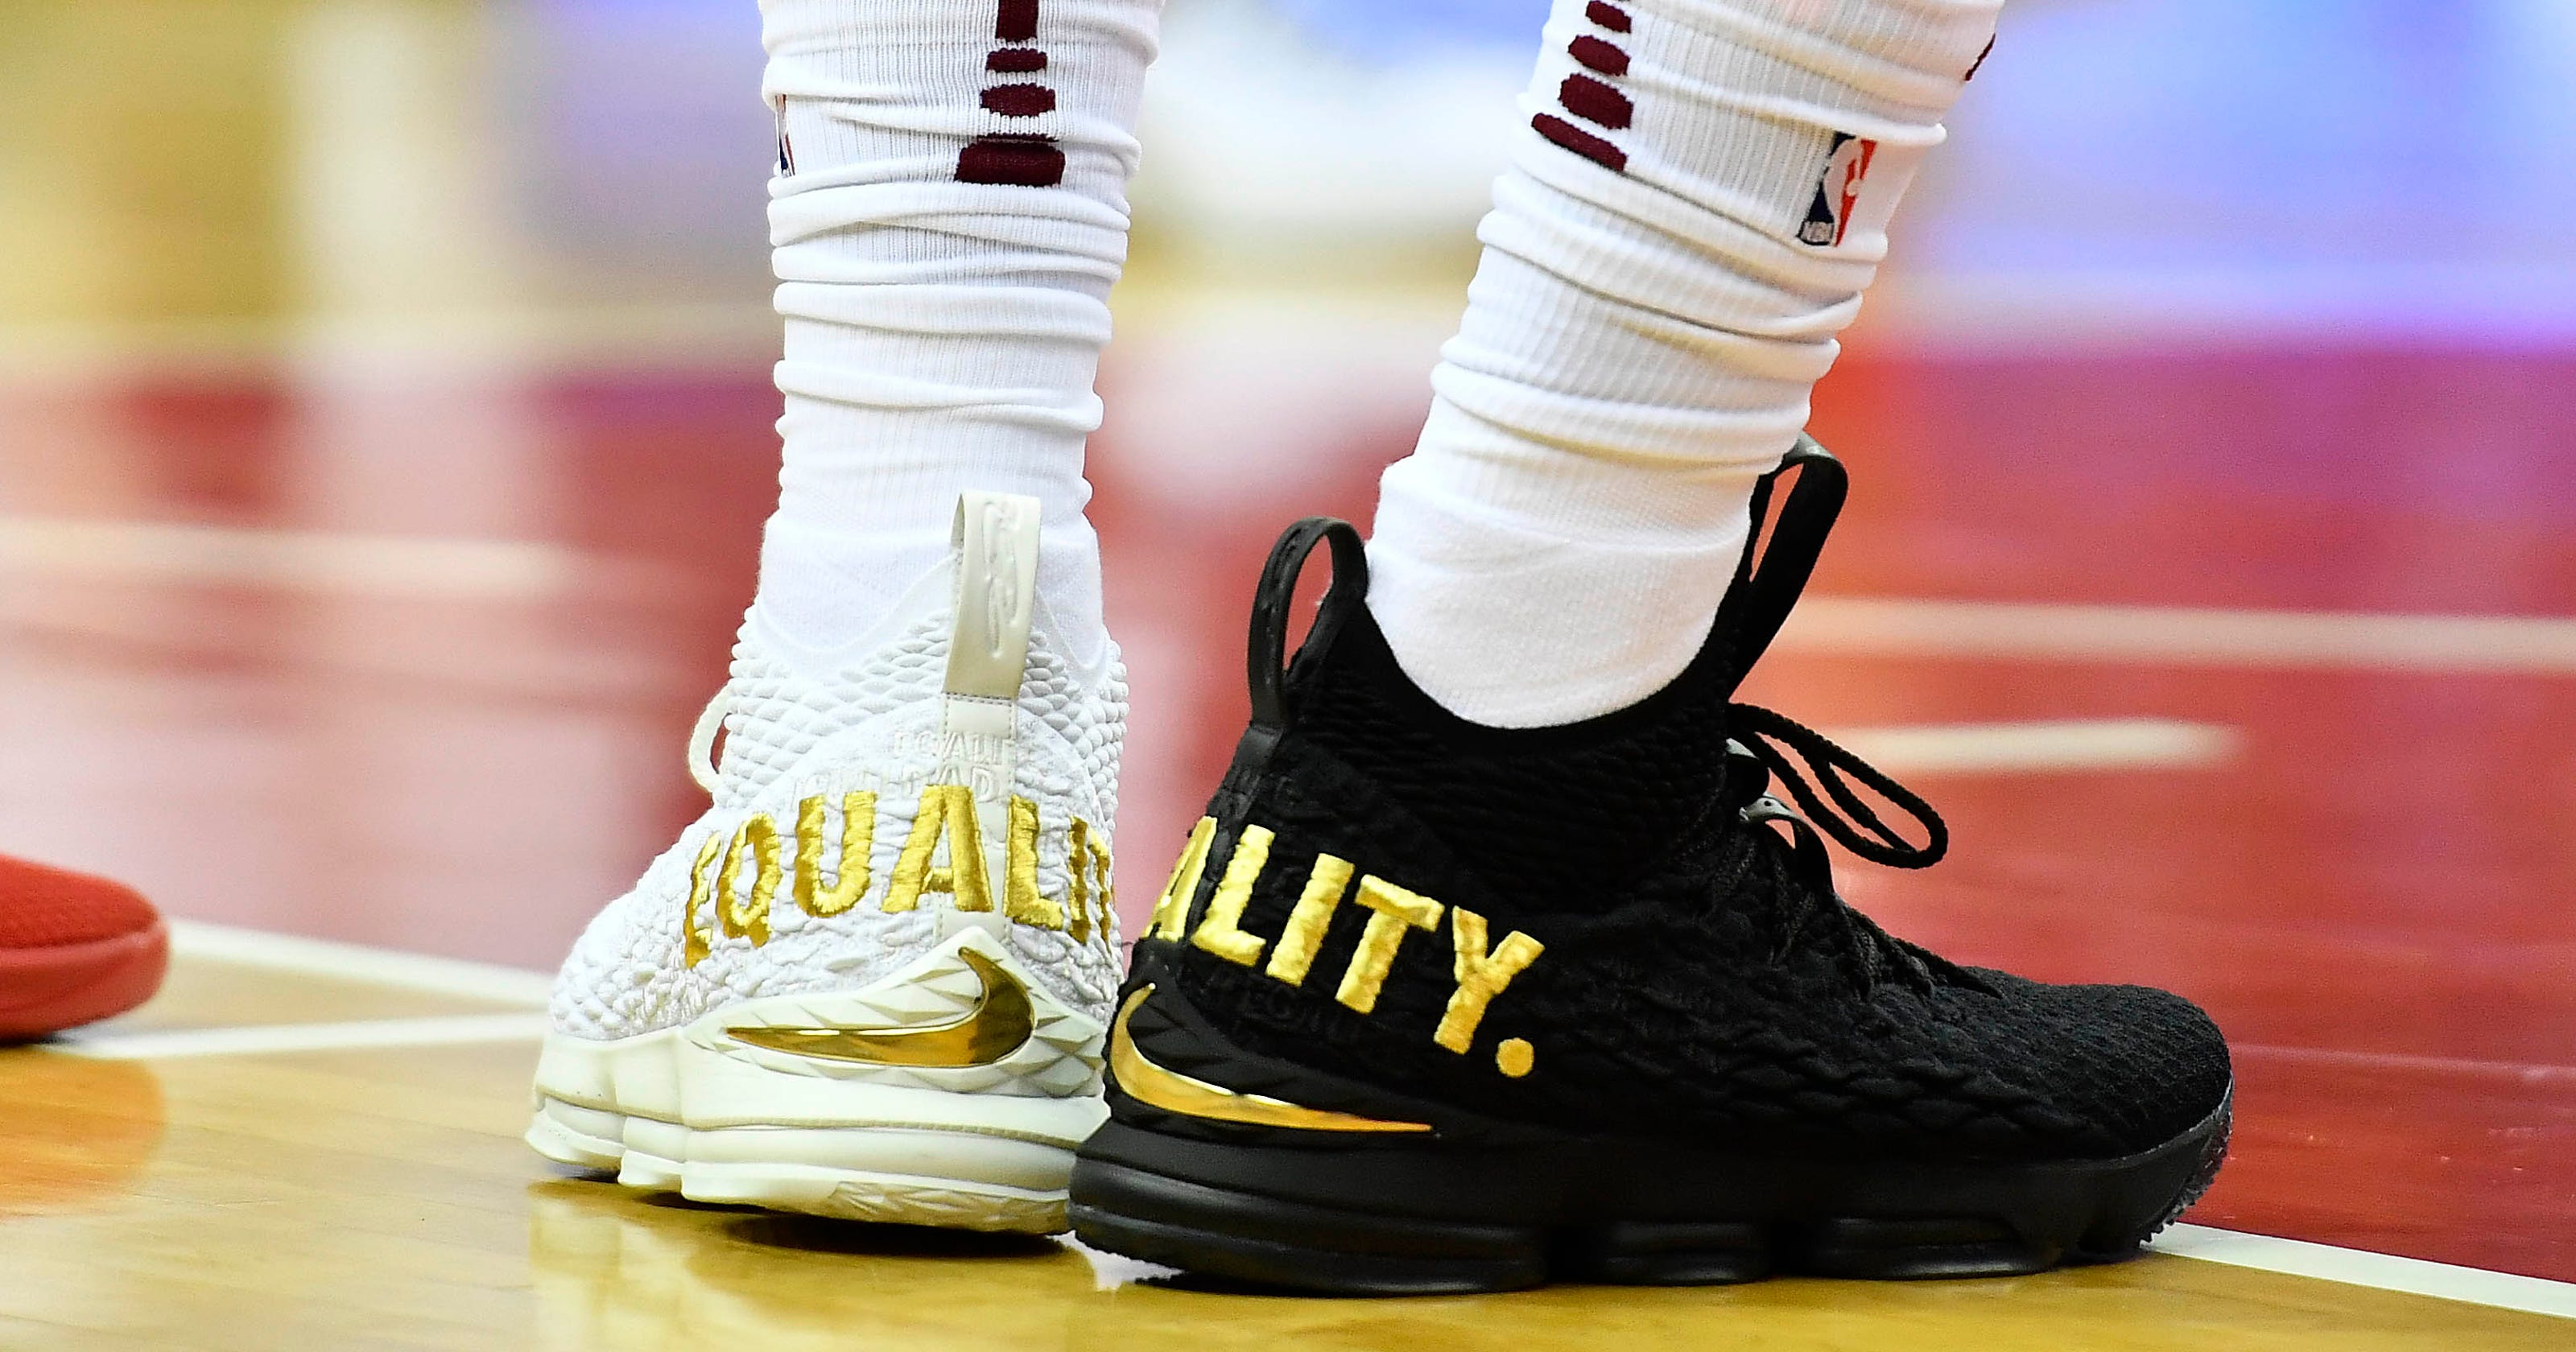 7ccf9c83249 LeBron James makes statement with  Equality  sneakers worn in D.C.